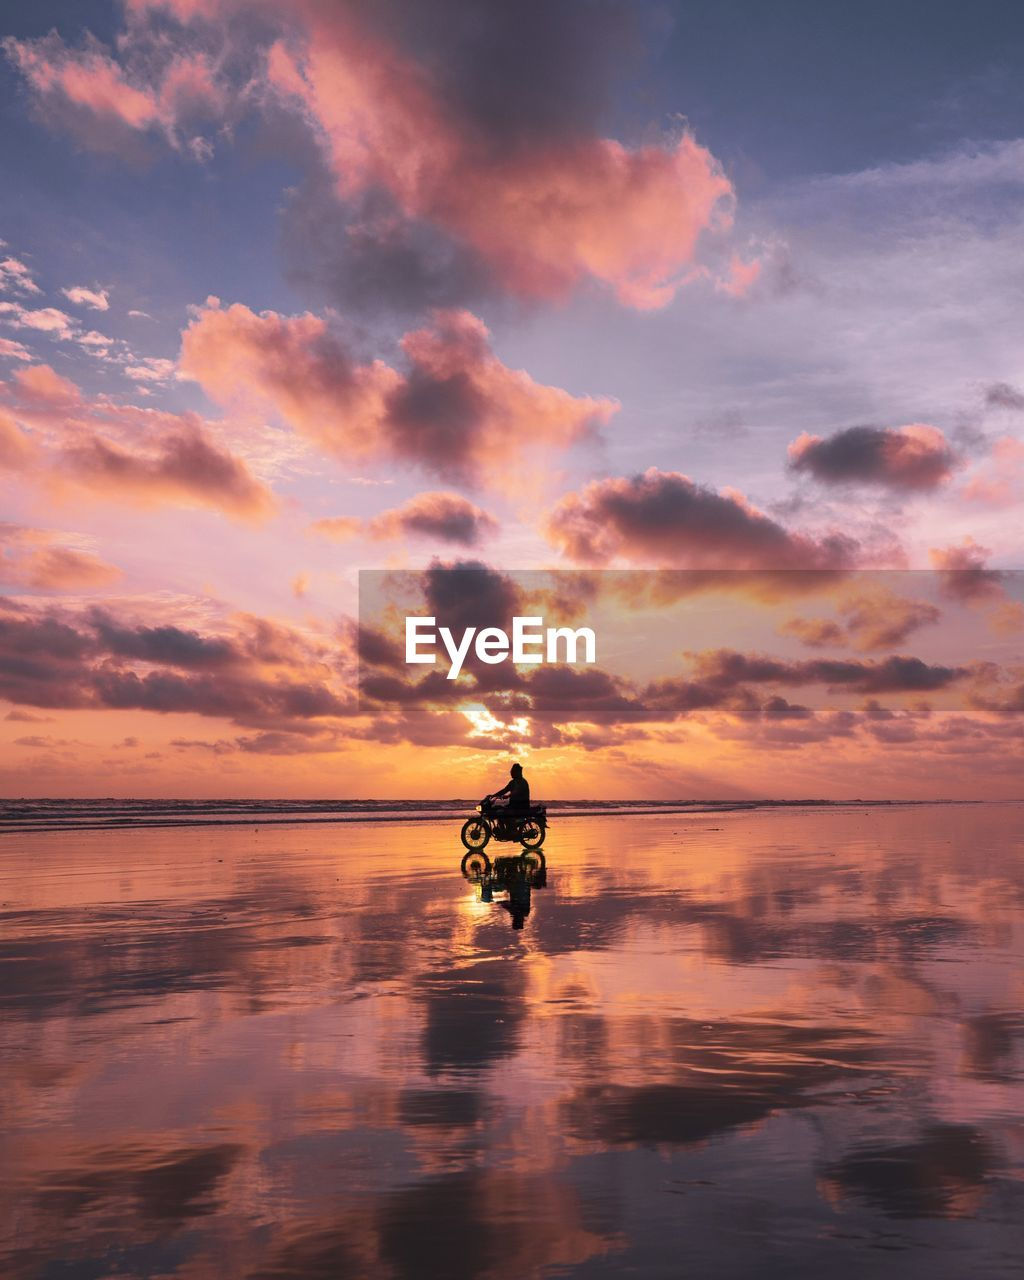 water, sky, sunset, cloud - sky, sea, scenics - nature, waterfront, beauty in nature, orange color, nautical vessel, mode of transportation, reflection, horizon over water, nature, transportation, real people, horizon, one person, silhouette, outdoors